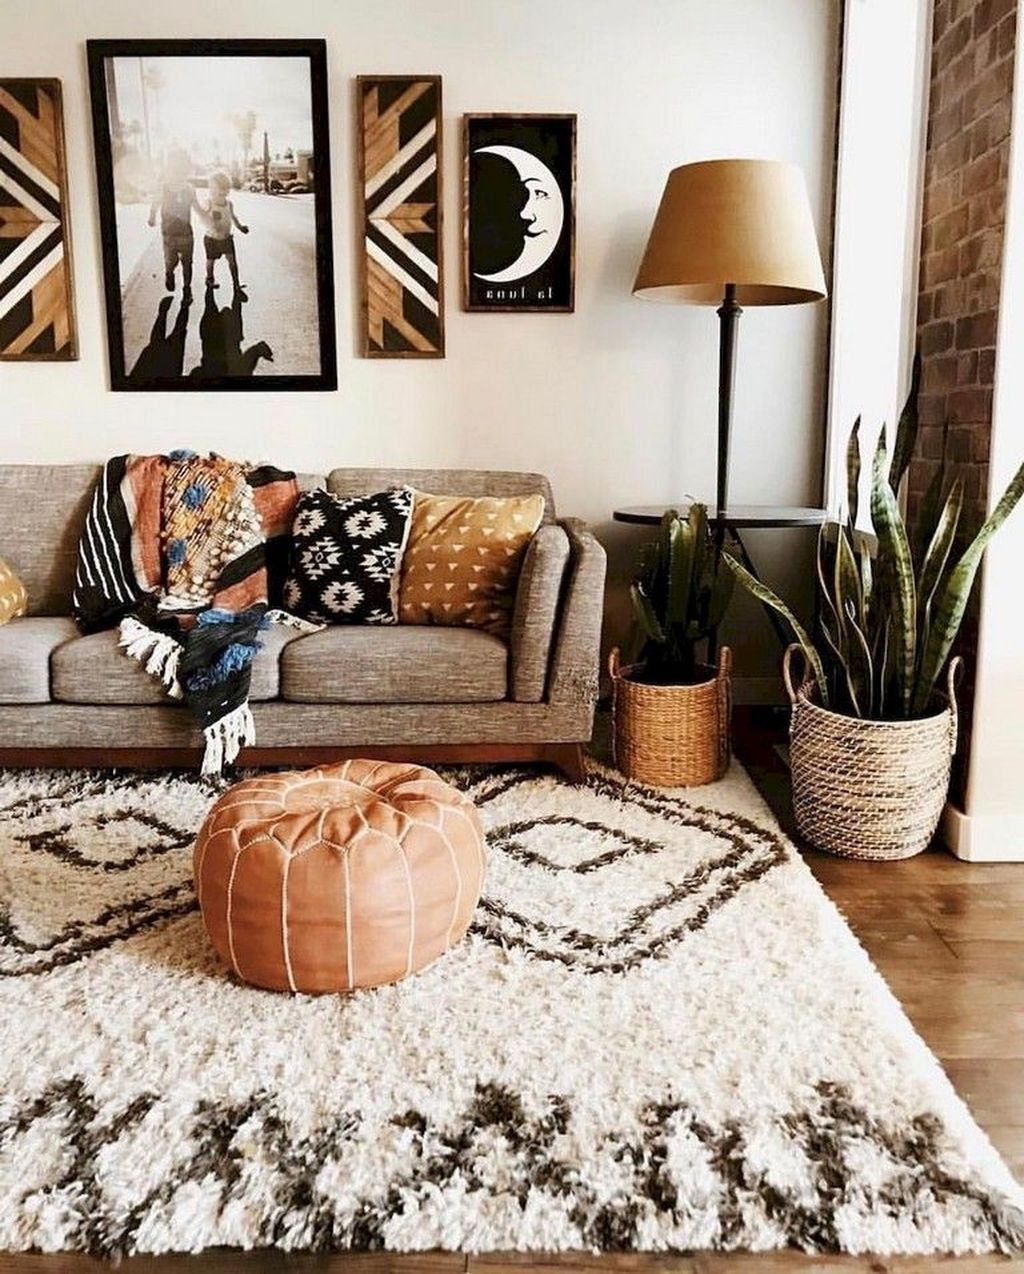 Lovely Boho Chic Apartment Decor Ideas Living Room Decor Apartment Modern Bohemian Living Room Boho Chic Living Room